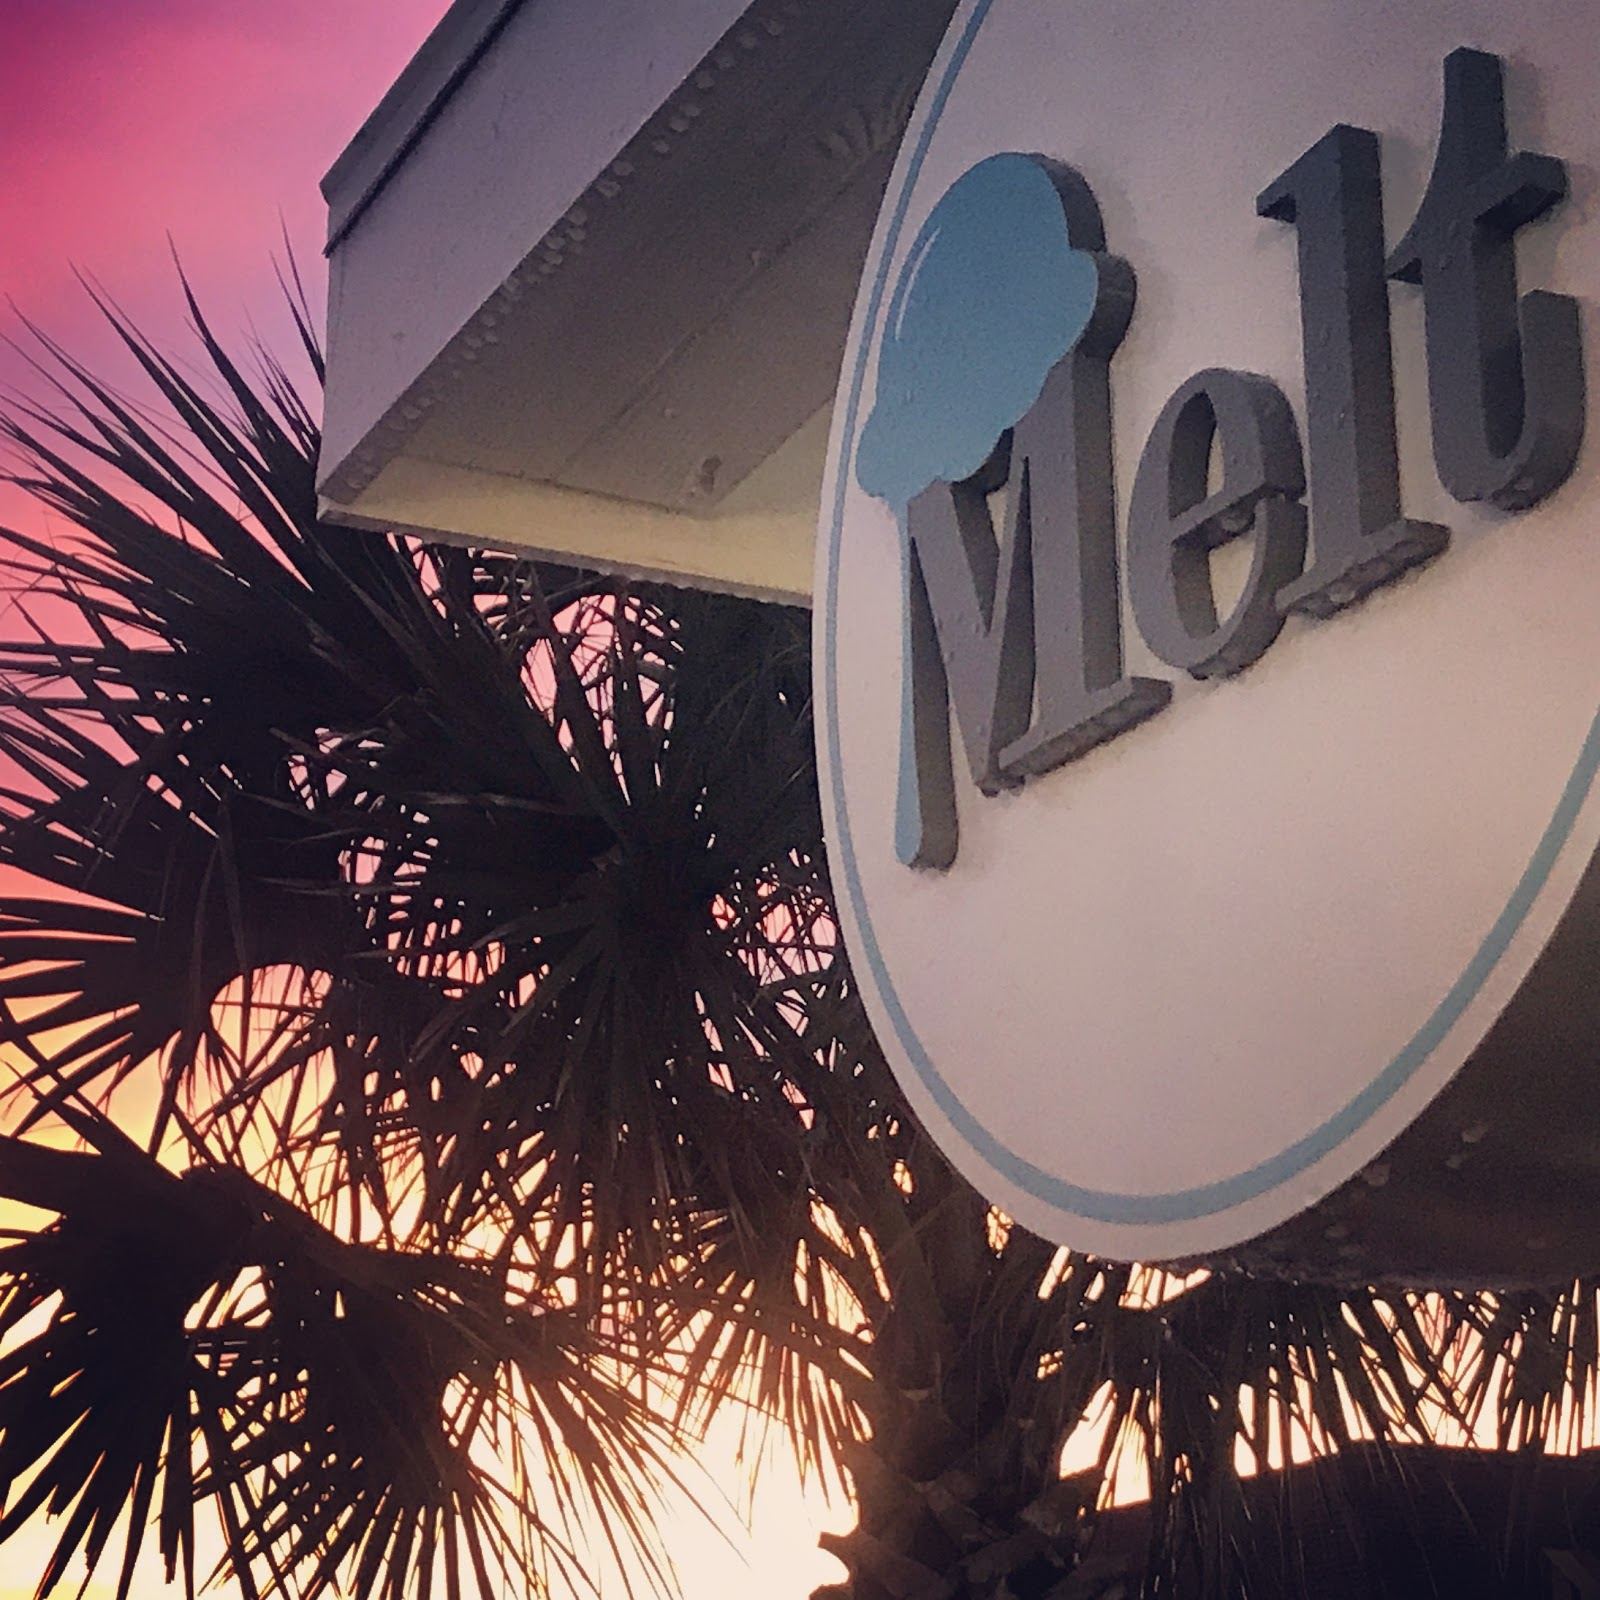 Enjoy Melt Ice Cream on Main Street